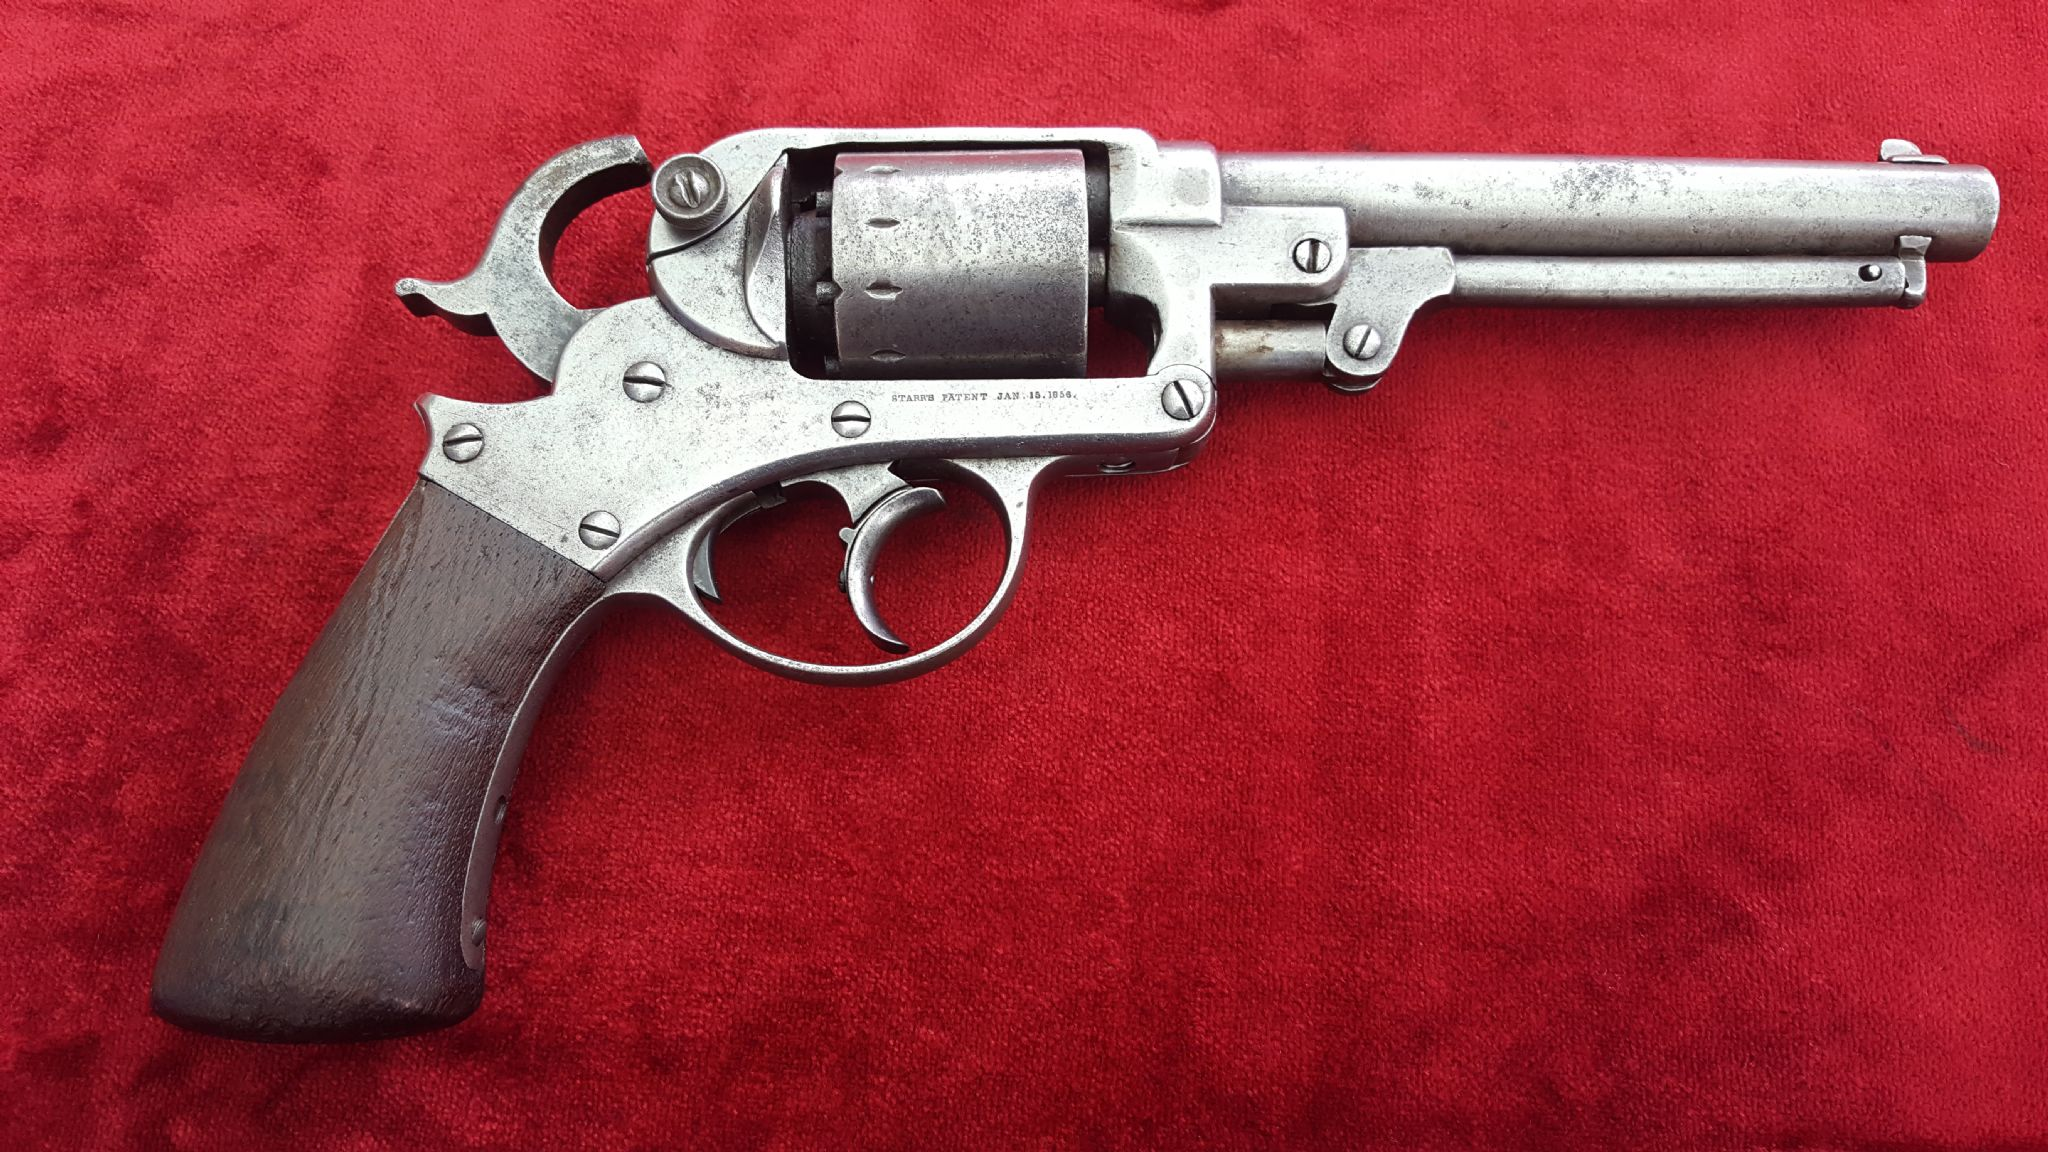 the colt revolver essay Samuel colt 15 the colt officer's model was often used as a target shooting gun (curtis, 1922 colt revolvers, 1923), owing to its cheap ammunition, but this was a single-shot variant meant to put a single round at a time down-range with as much accuracy as possible.